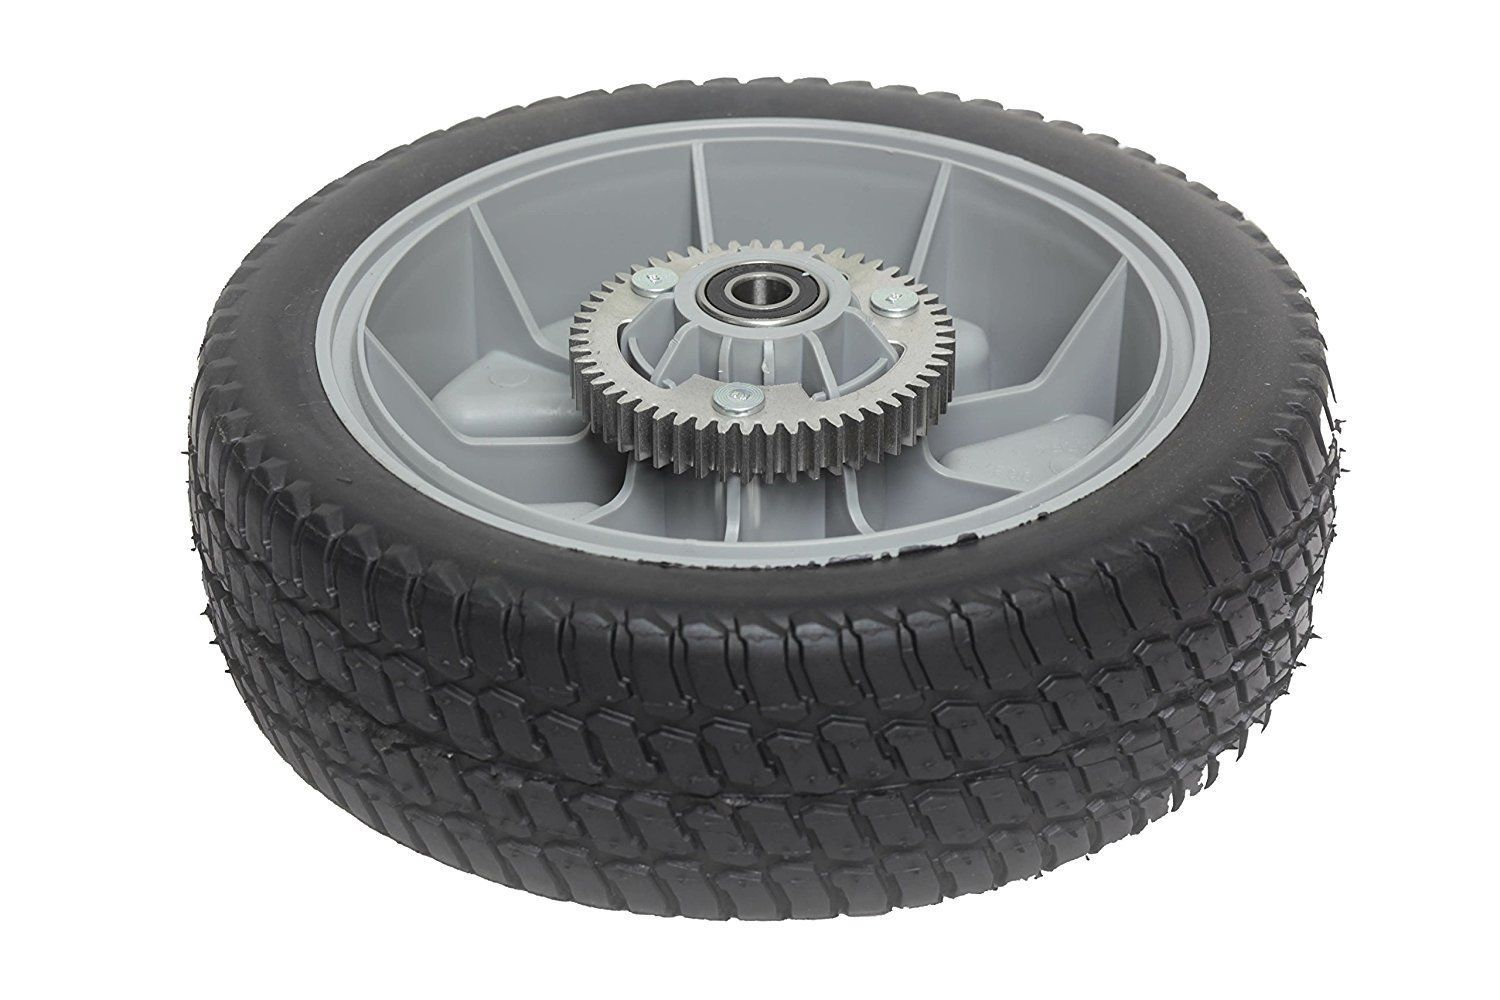 Genuine Toro OEM 10-inch Wheel Gear Assembly Toro 125-2509